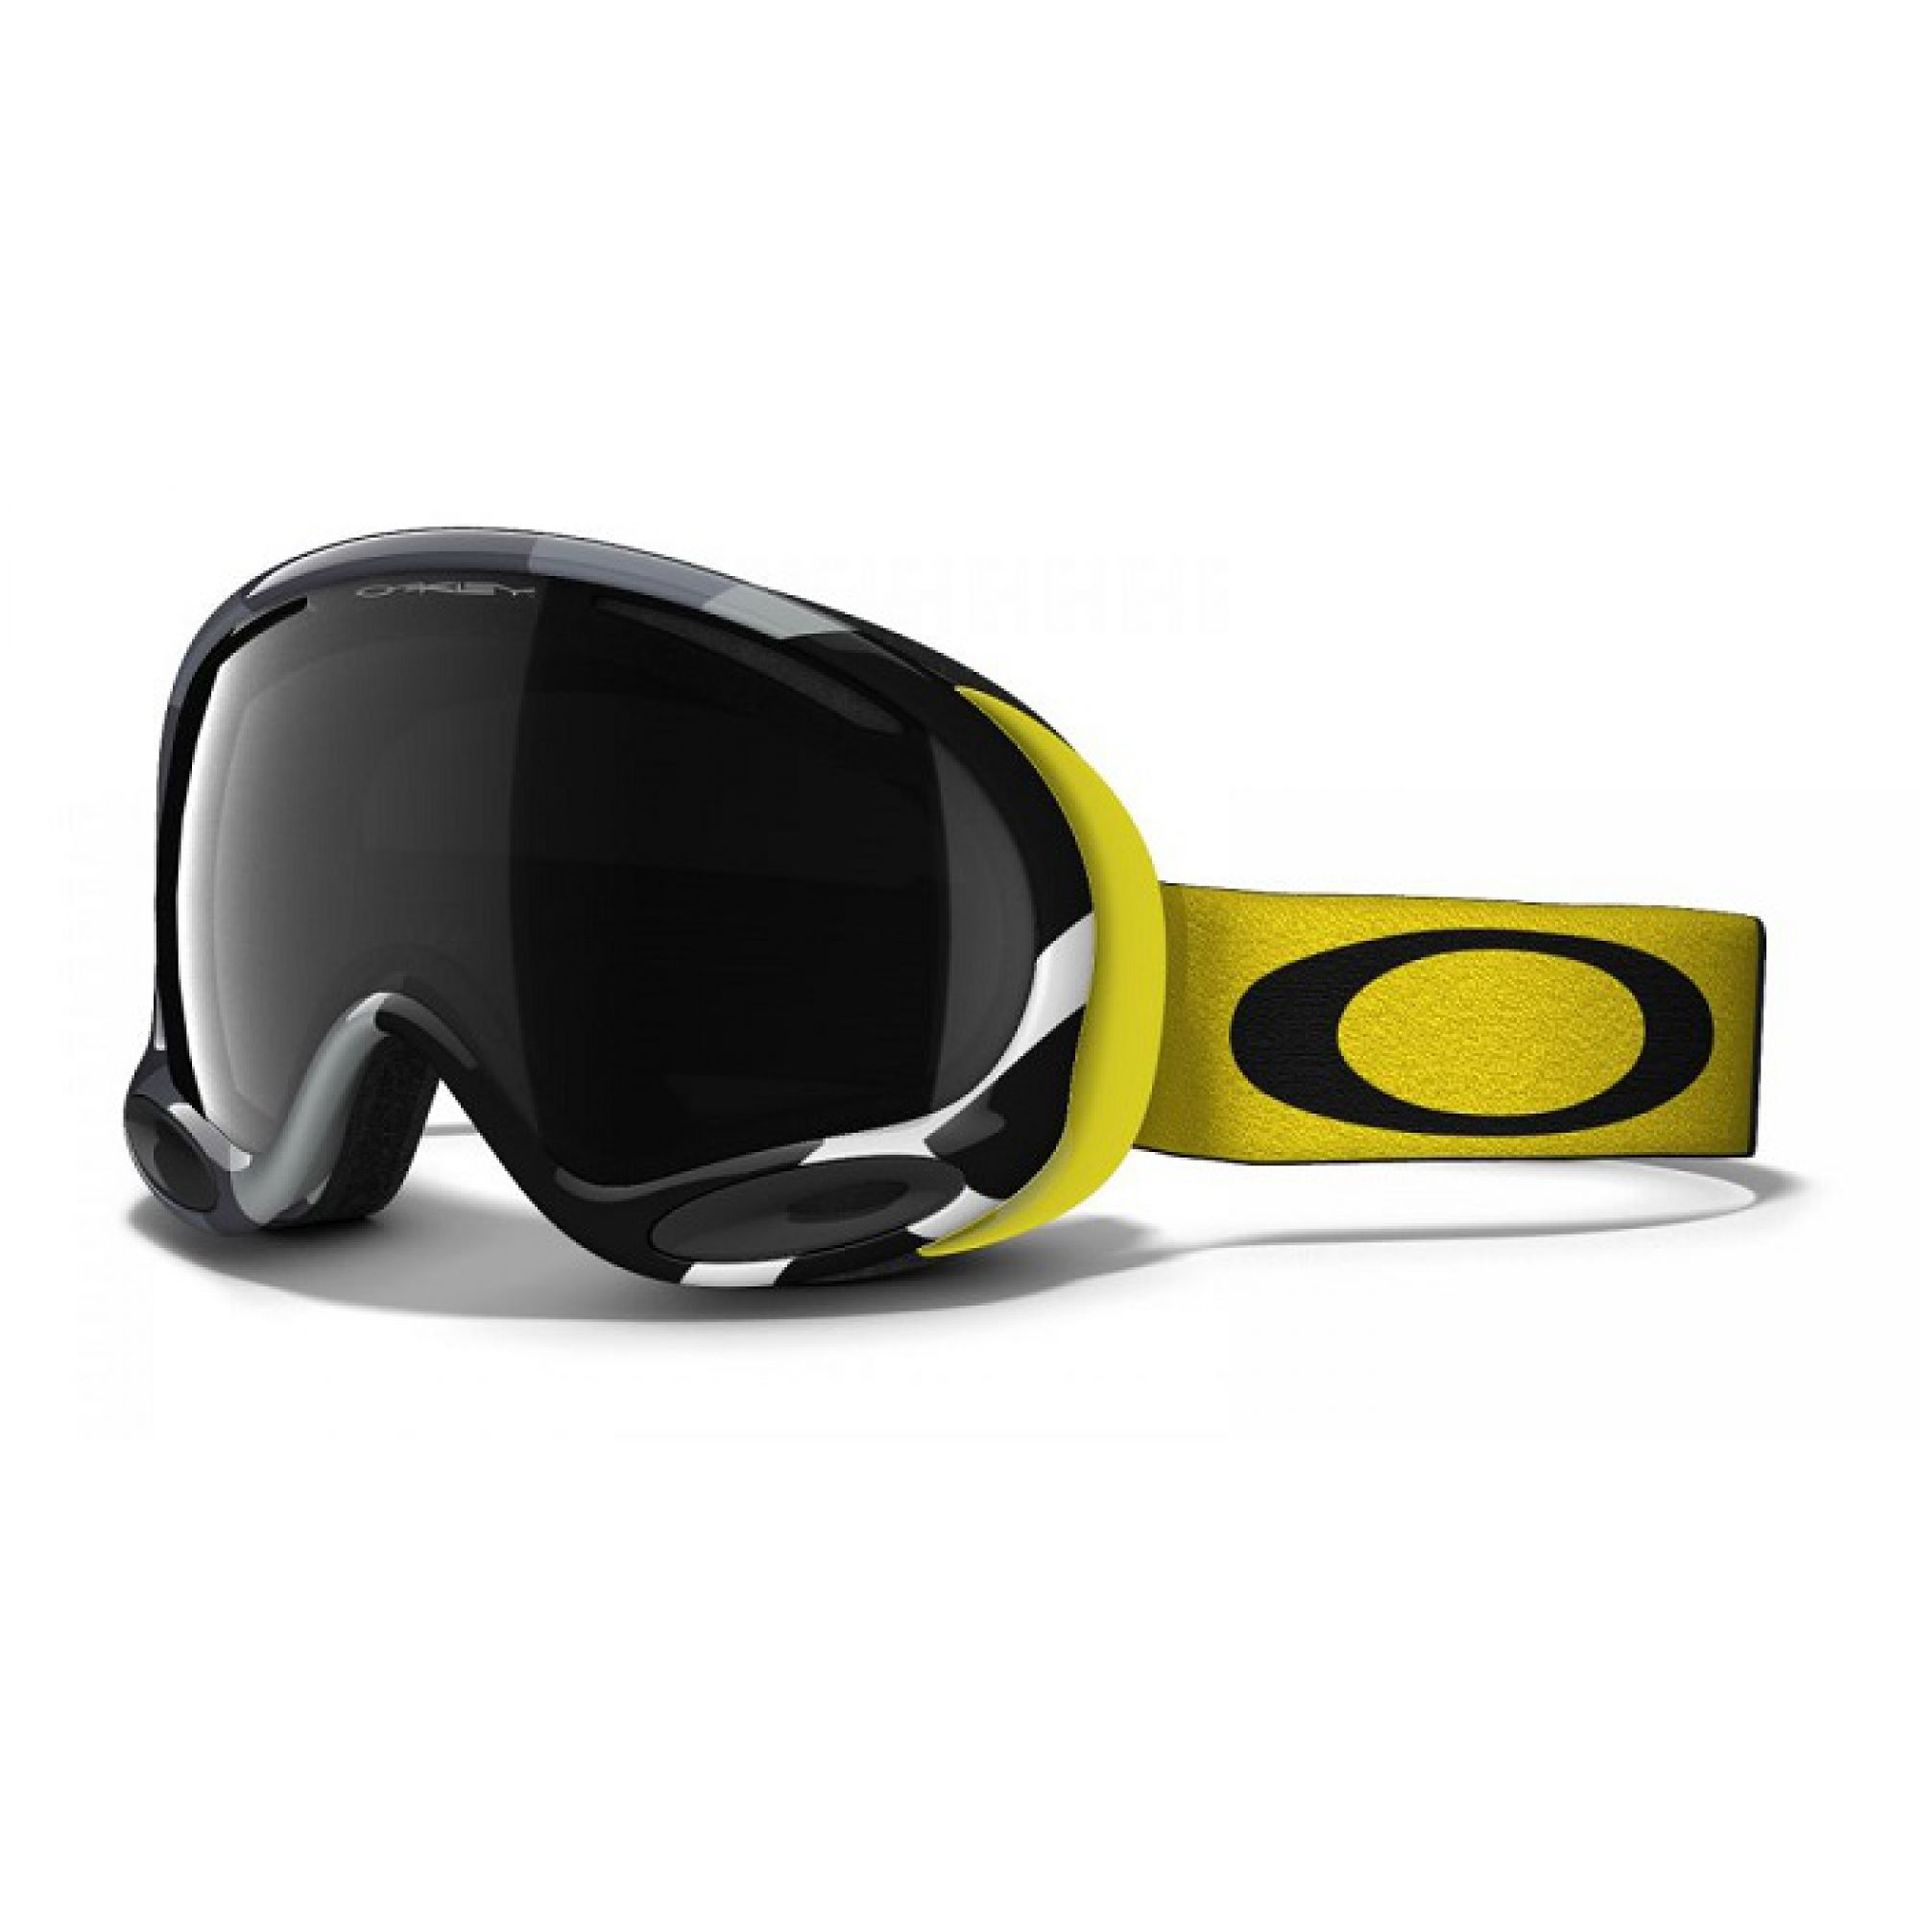 GOGLE OAKLEY A-FRAME 2.0 FLIGHT